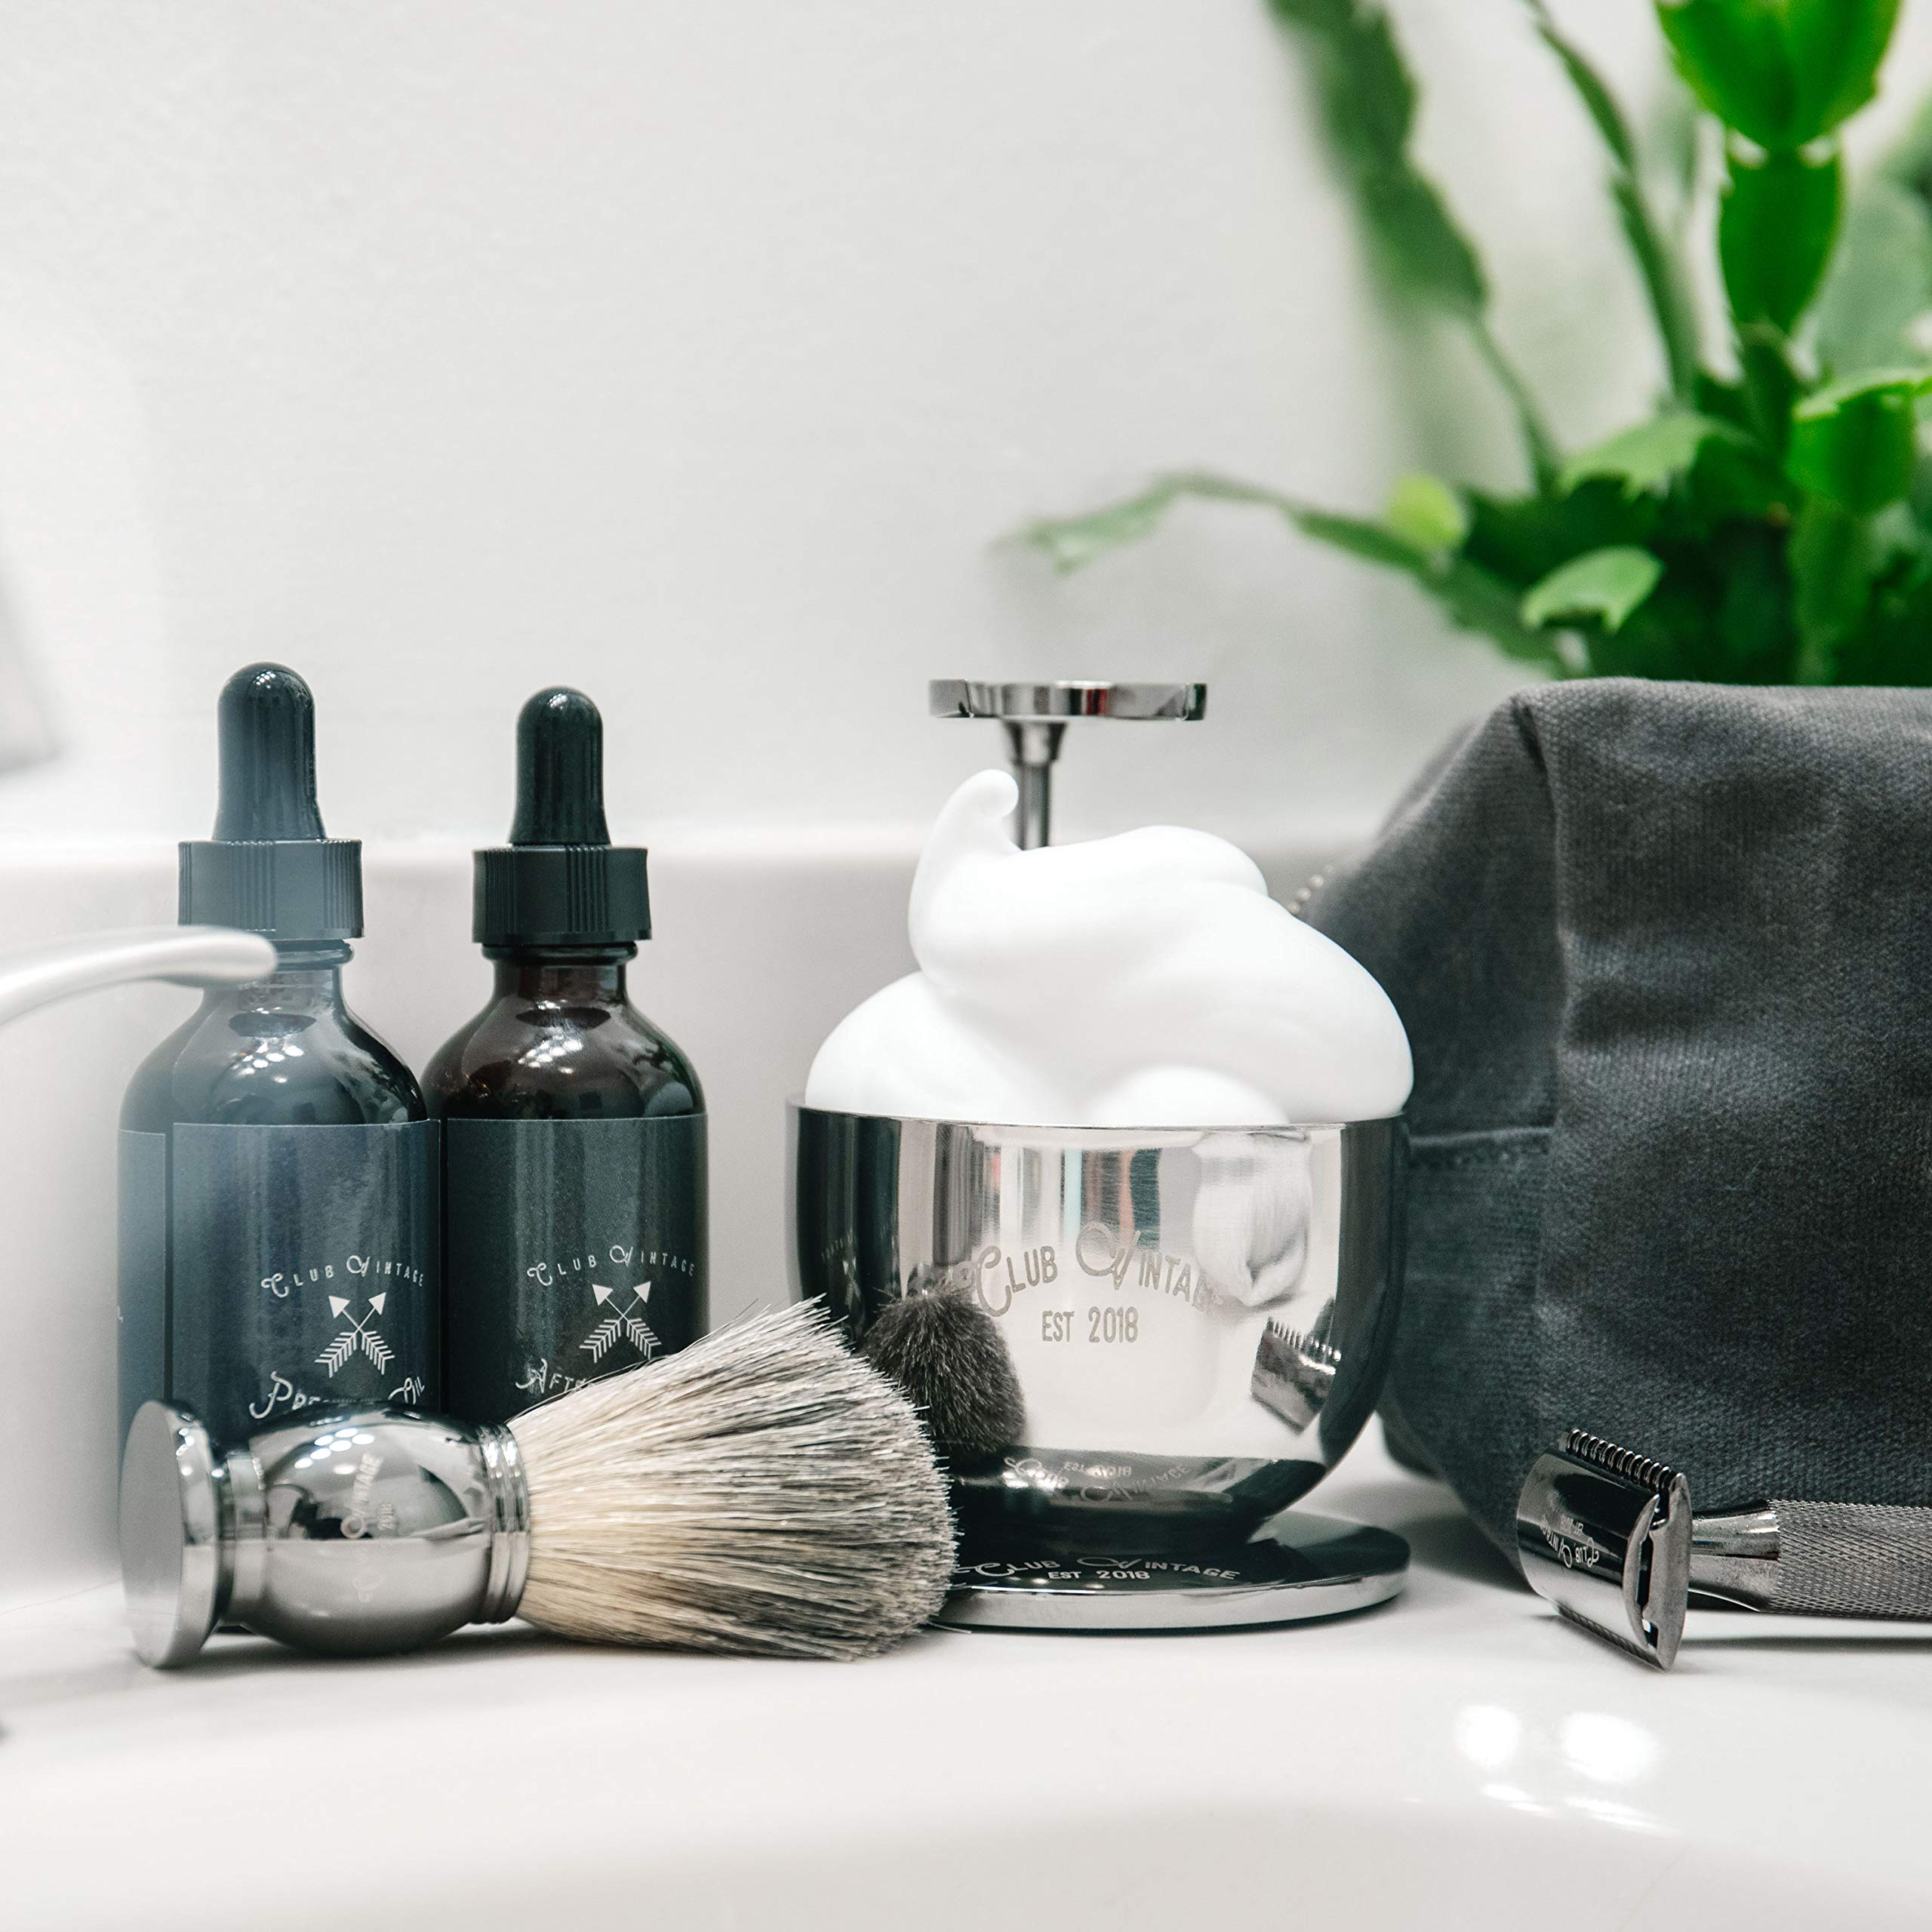 Complete Wet Shaving Kit for Men   This Deluxe Shave Set Includes 9 Essentials: A Canvas Dopp Kit, Real Badger Hair Shaving Brush, Safety Razor, Stand, Shave Bowl, 4-Pack of Shaving Soap & More